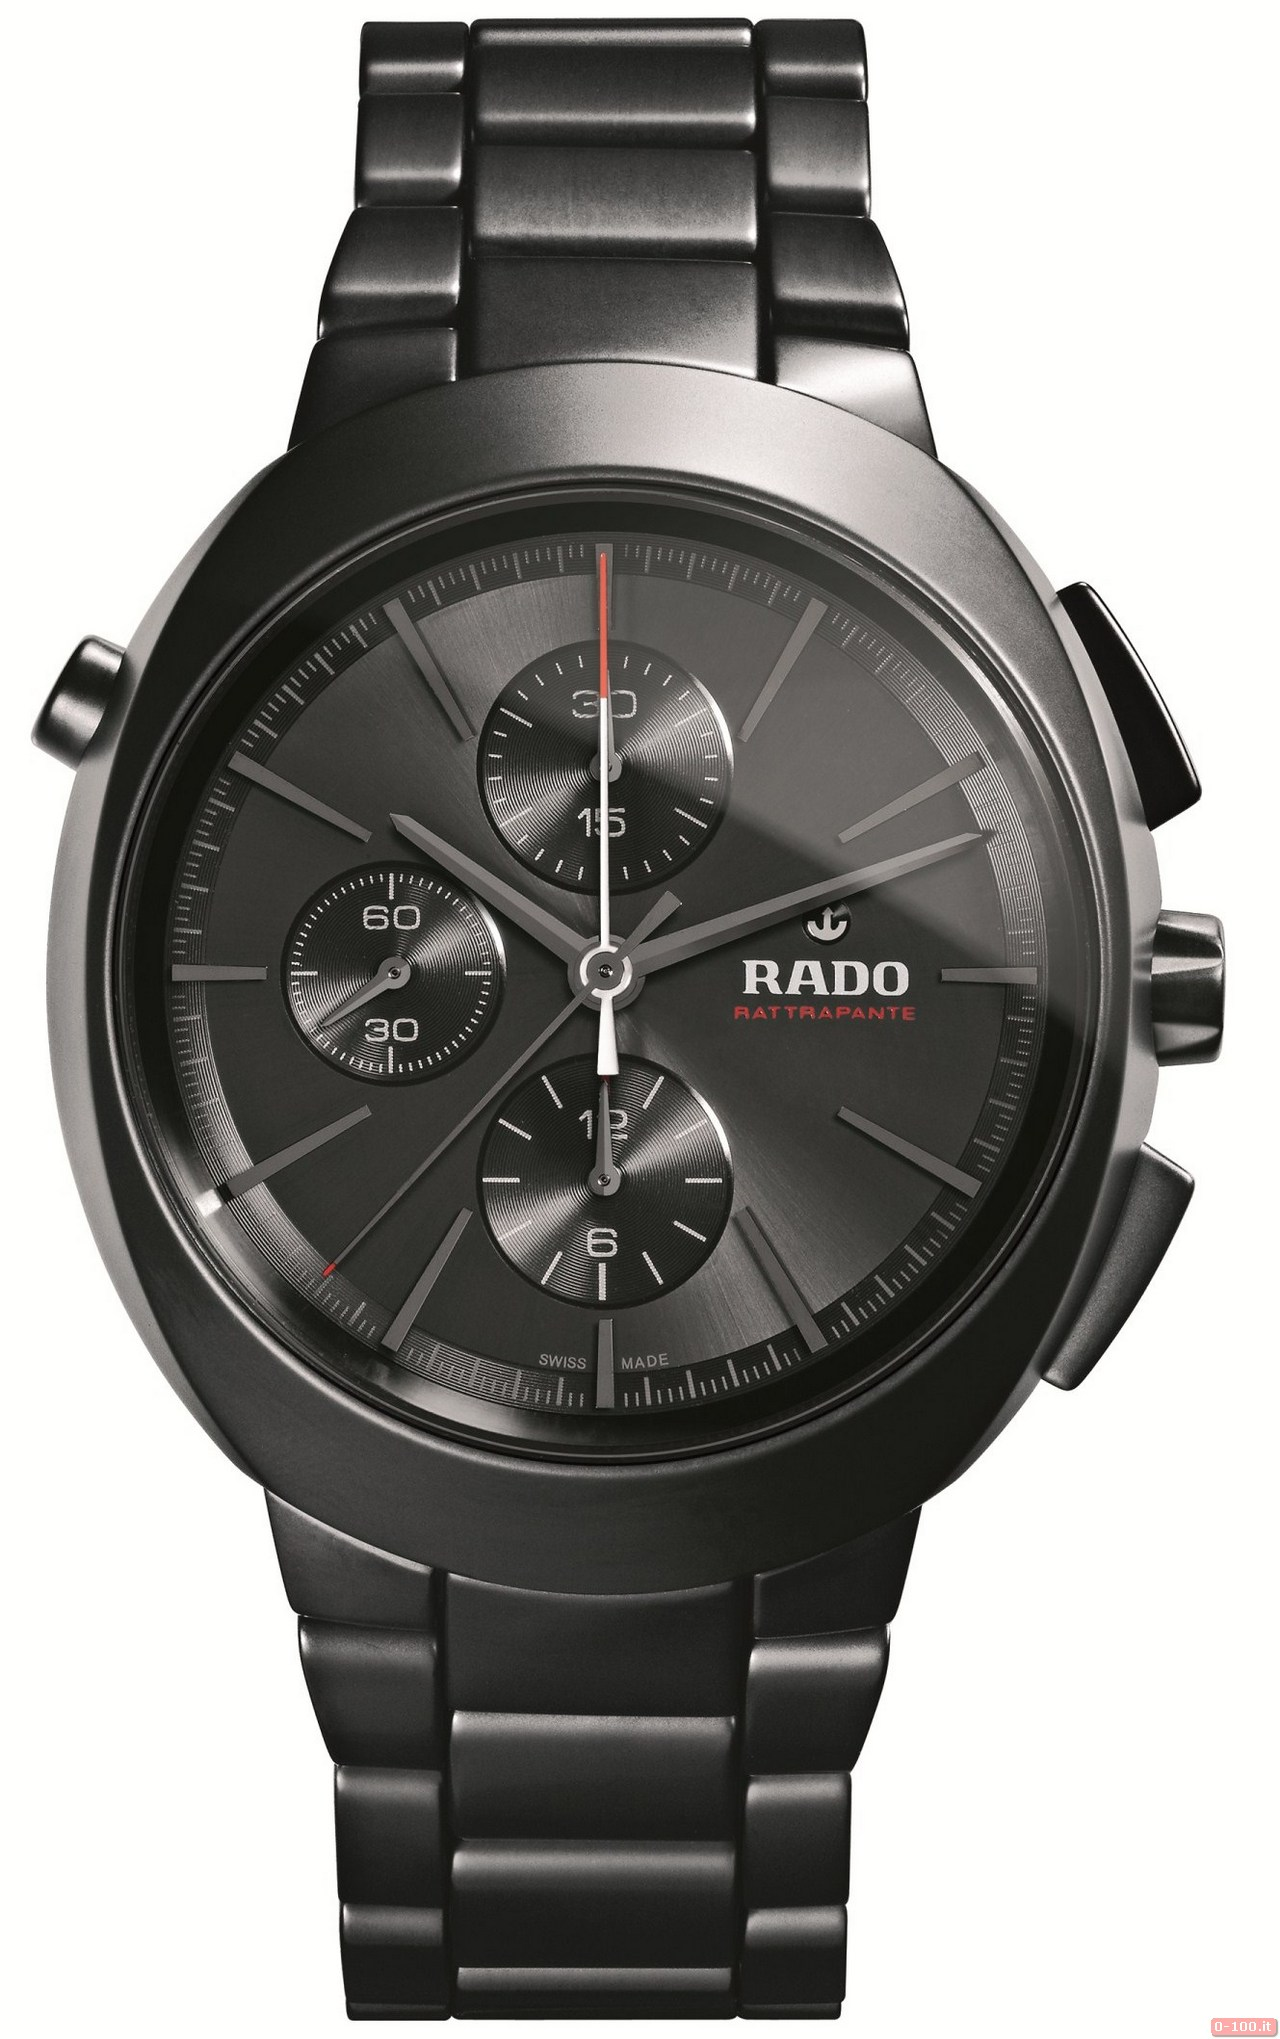 rado-d-star-automatic-chronograph-rattrapante-limited-edition (3)